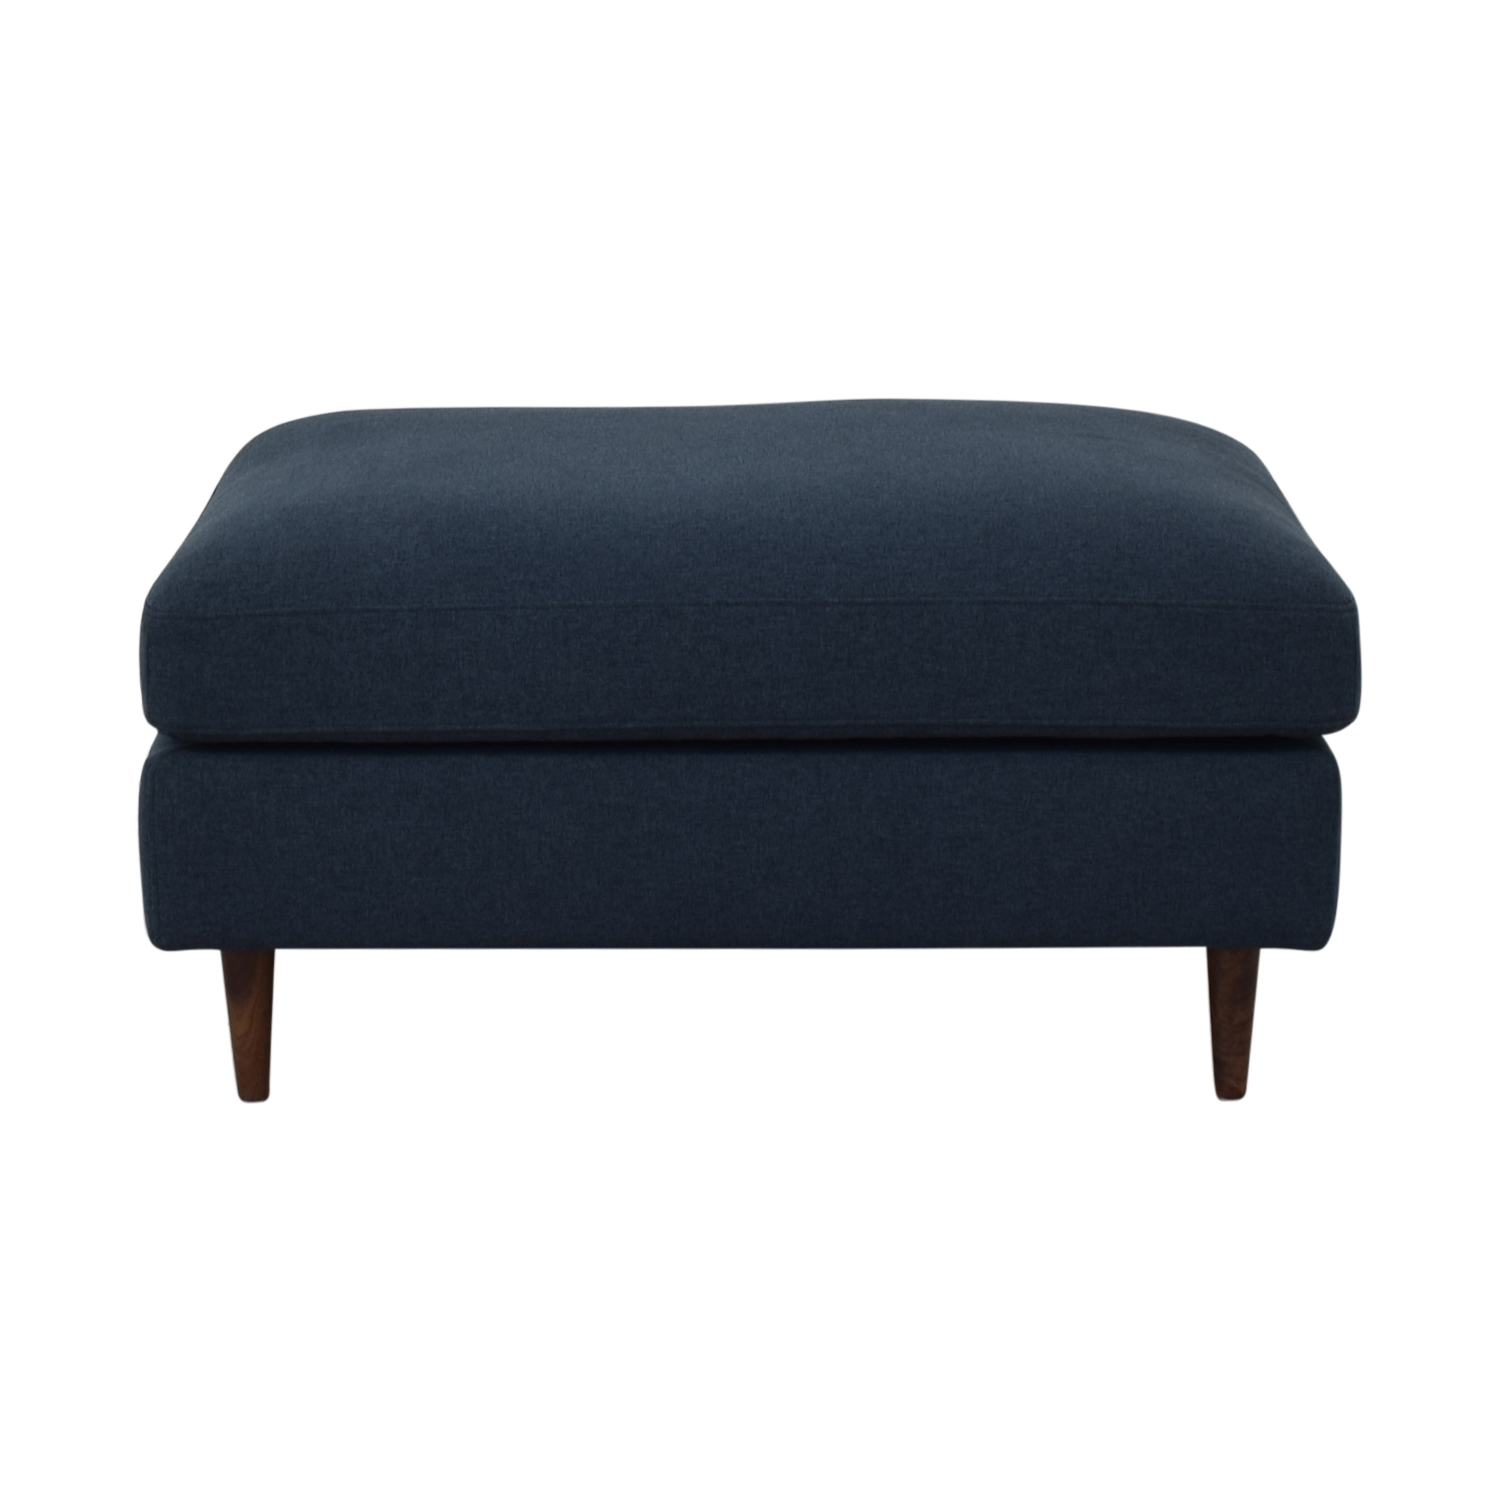 Interior Define Sloan Ottoman coupon